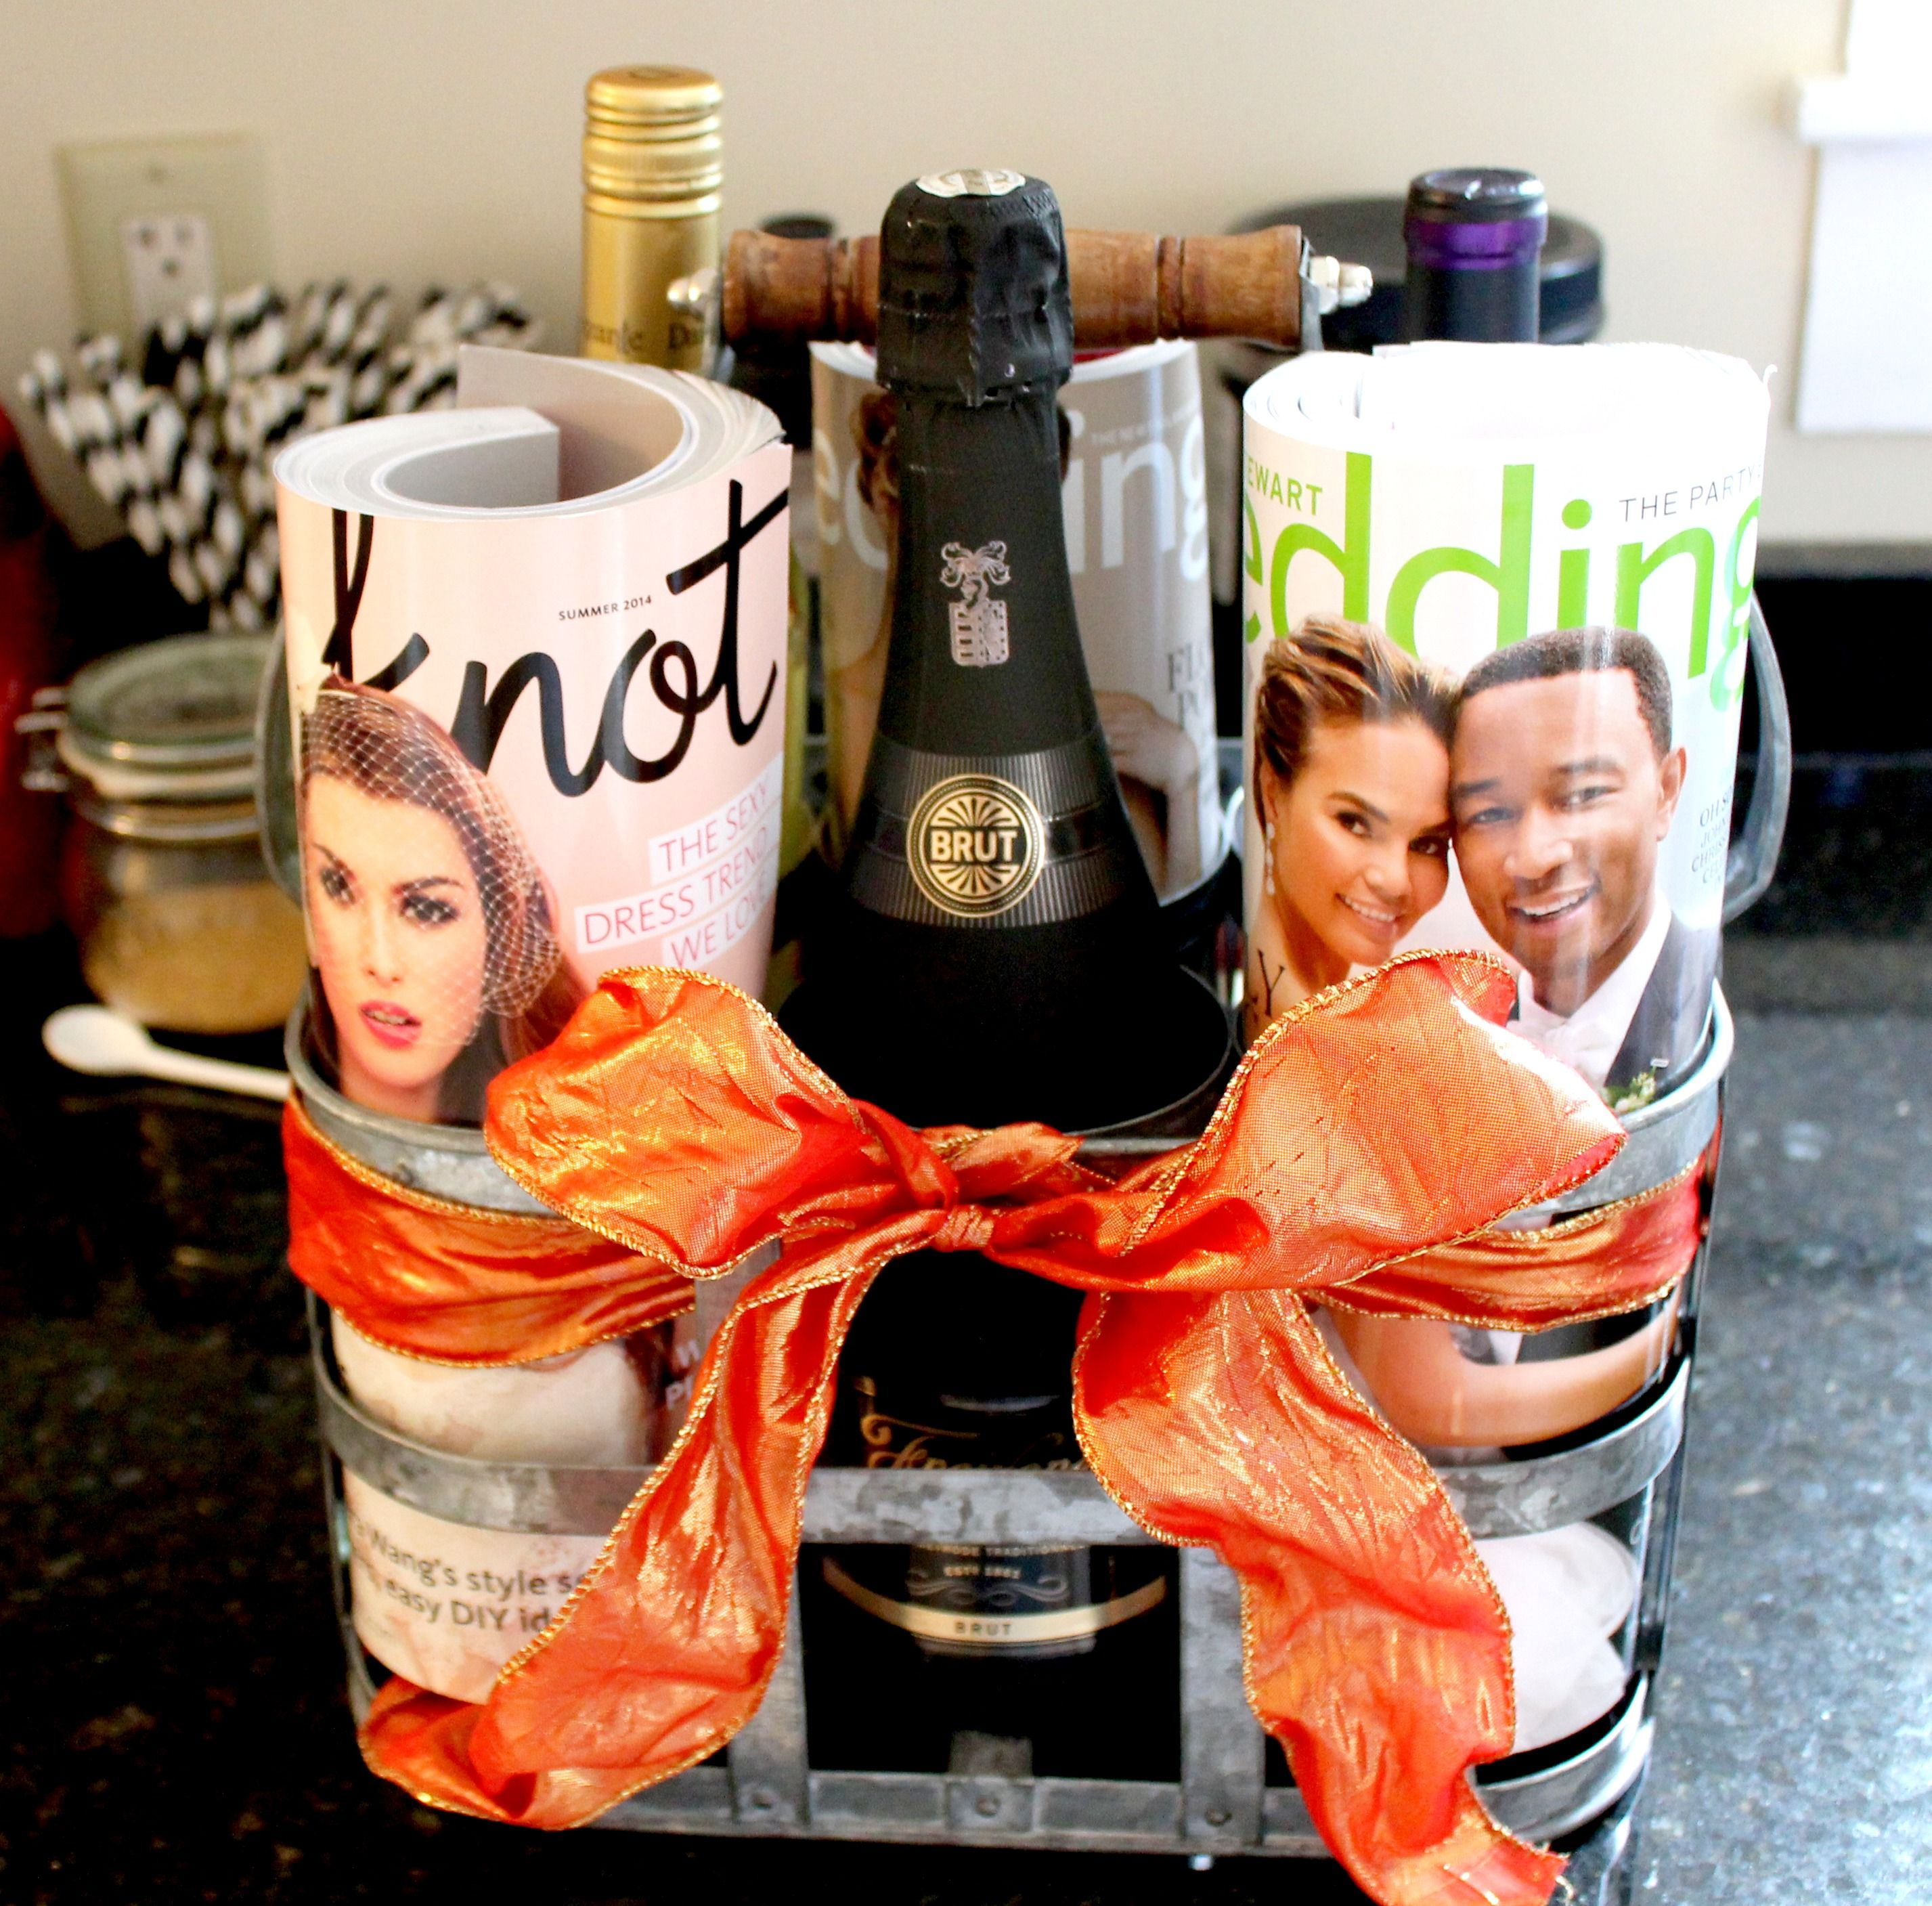 Cute bridal gift ideas! Combine bridal magazines and a